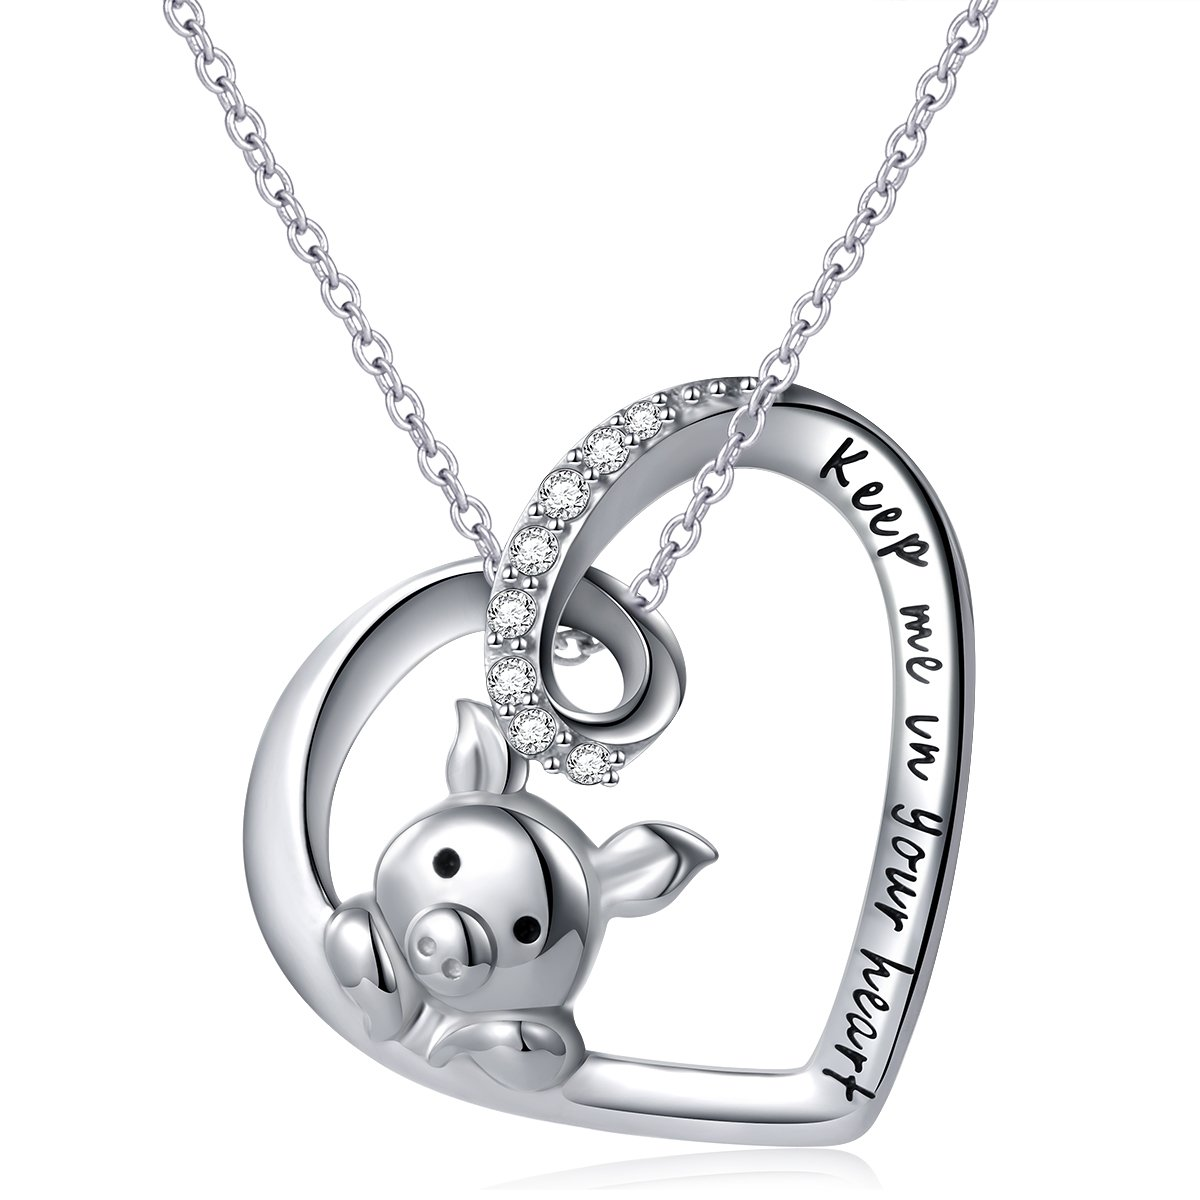 925 Sterling Silver Engraved''Keep Me in Your Heart'' Cute Pig Pendant Necklace for Women,18''